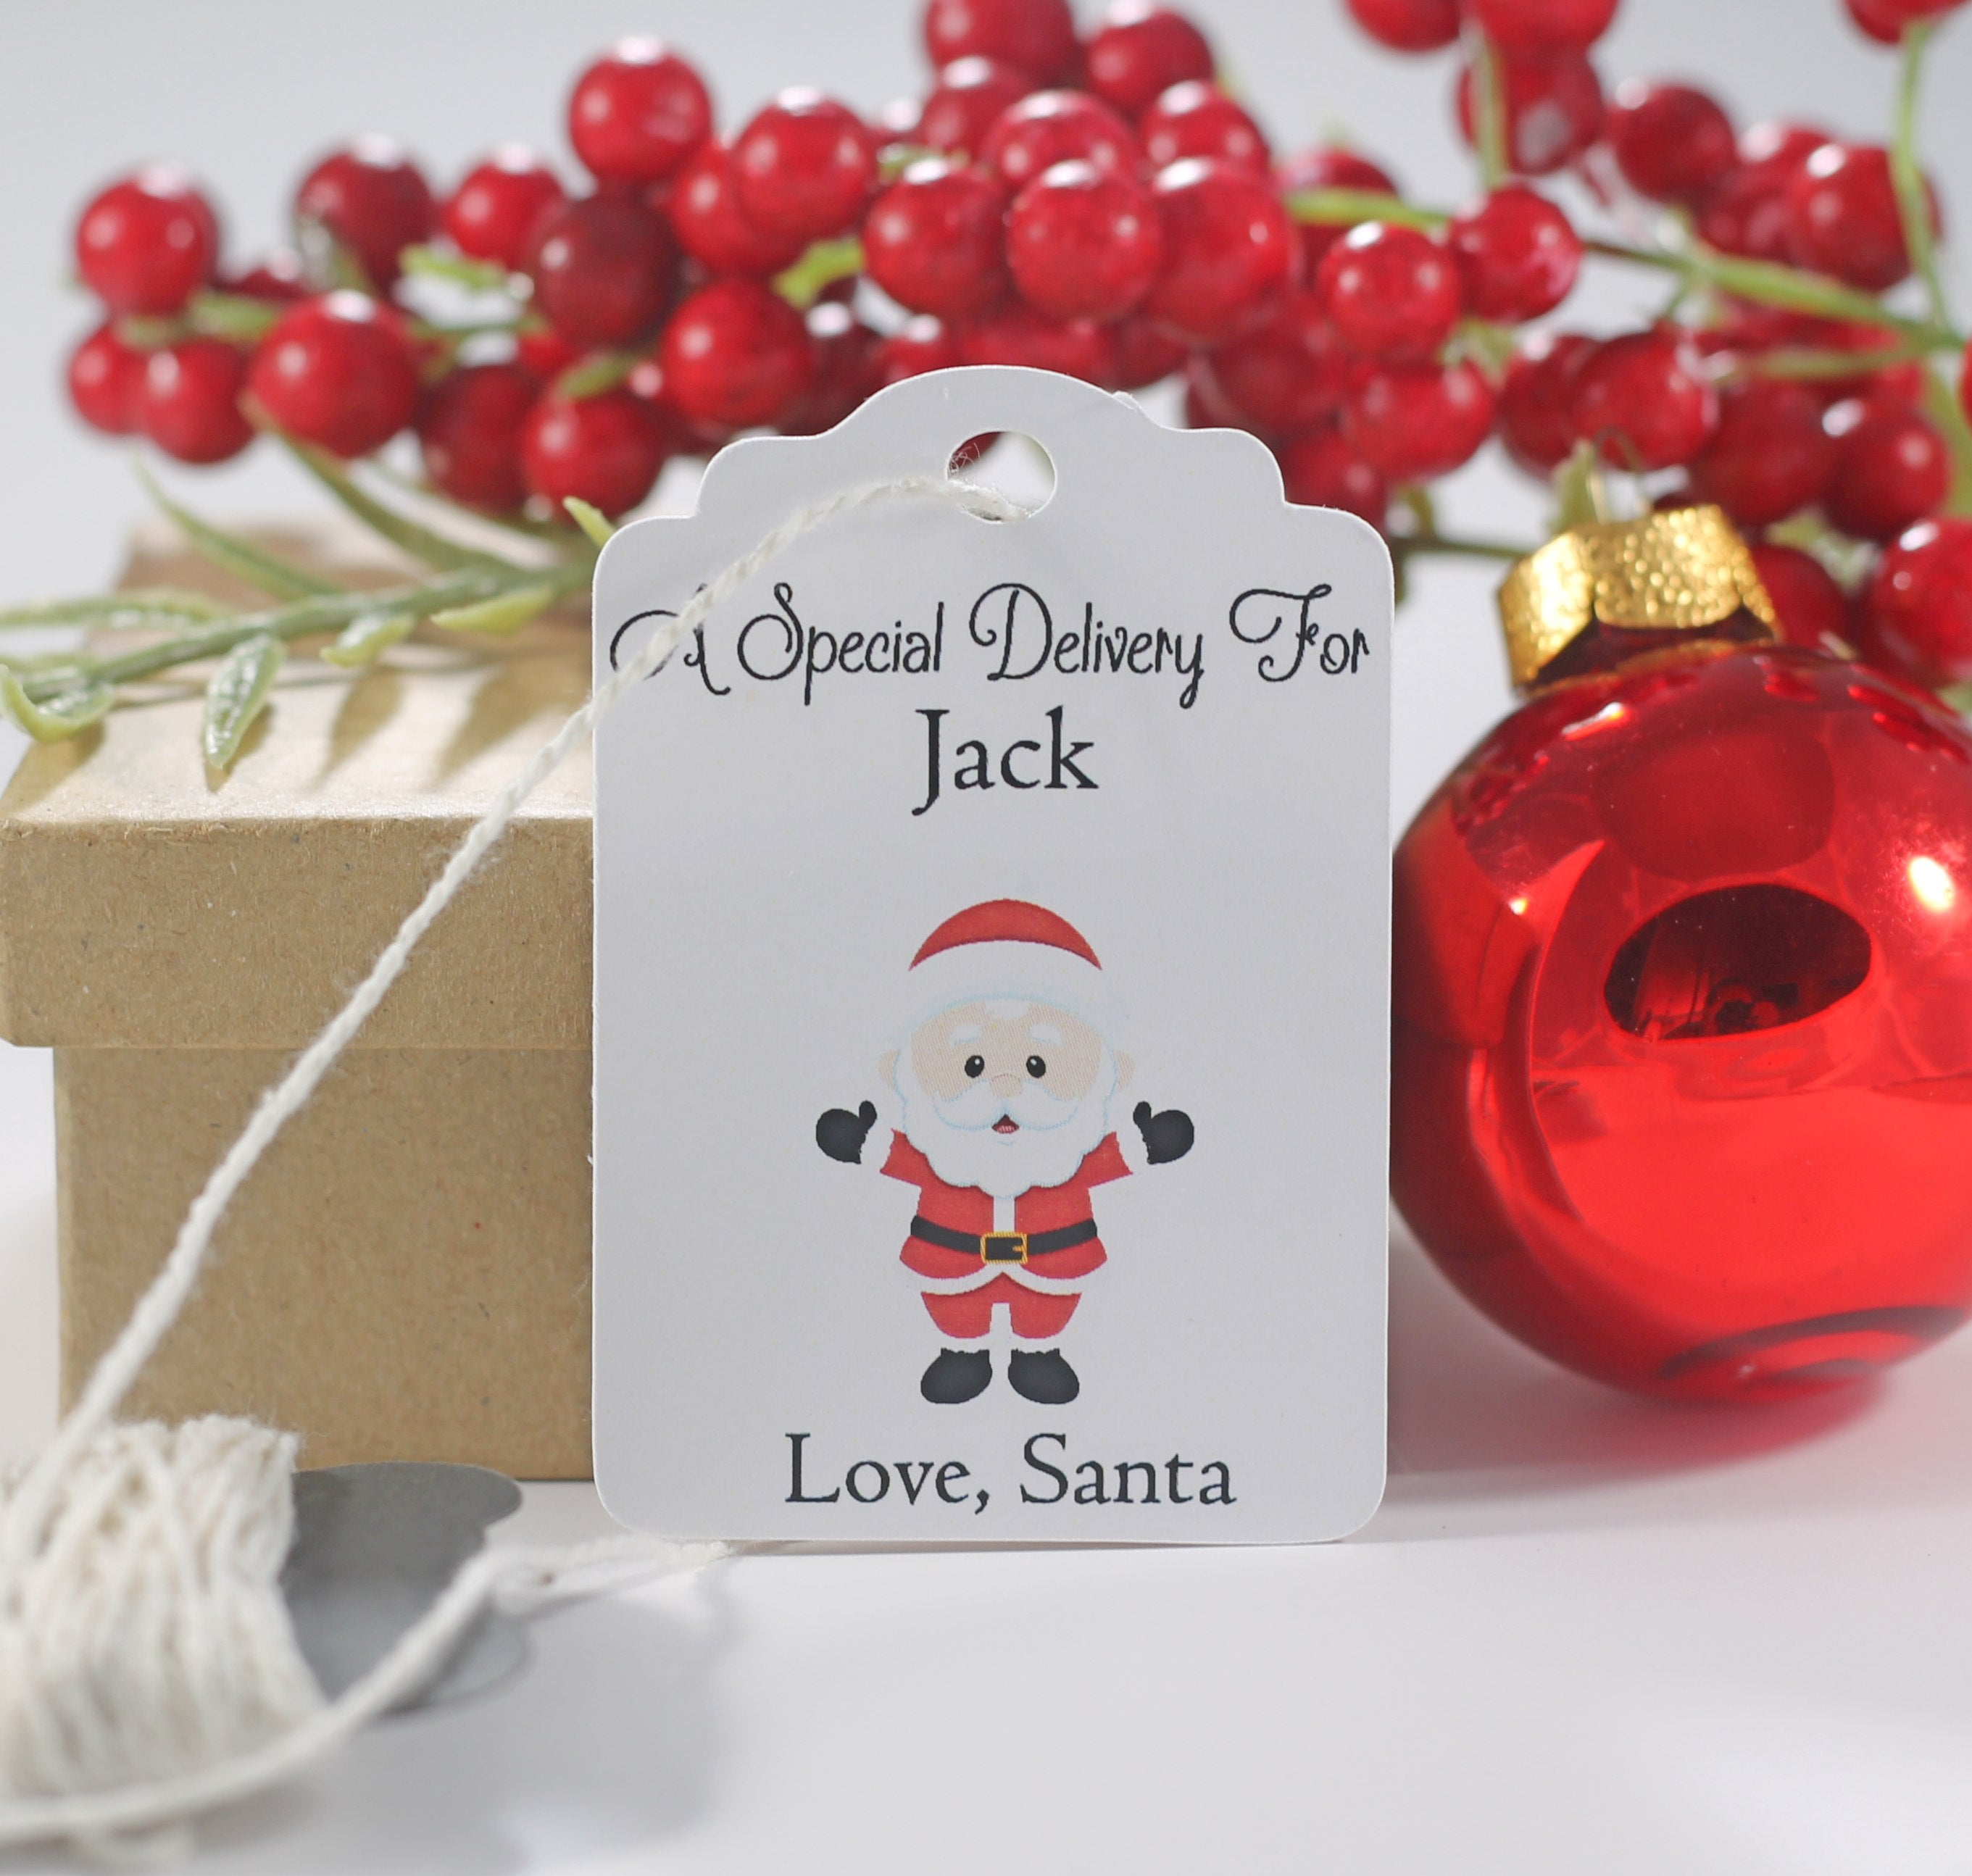 Christmas Tags - Child's Present Labels From Santa Claus 10 pc-Christmas Tags-The Paper Medley